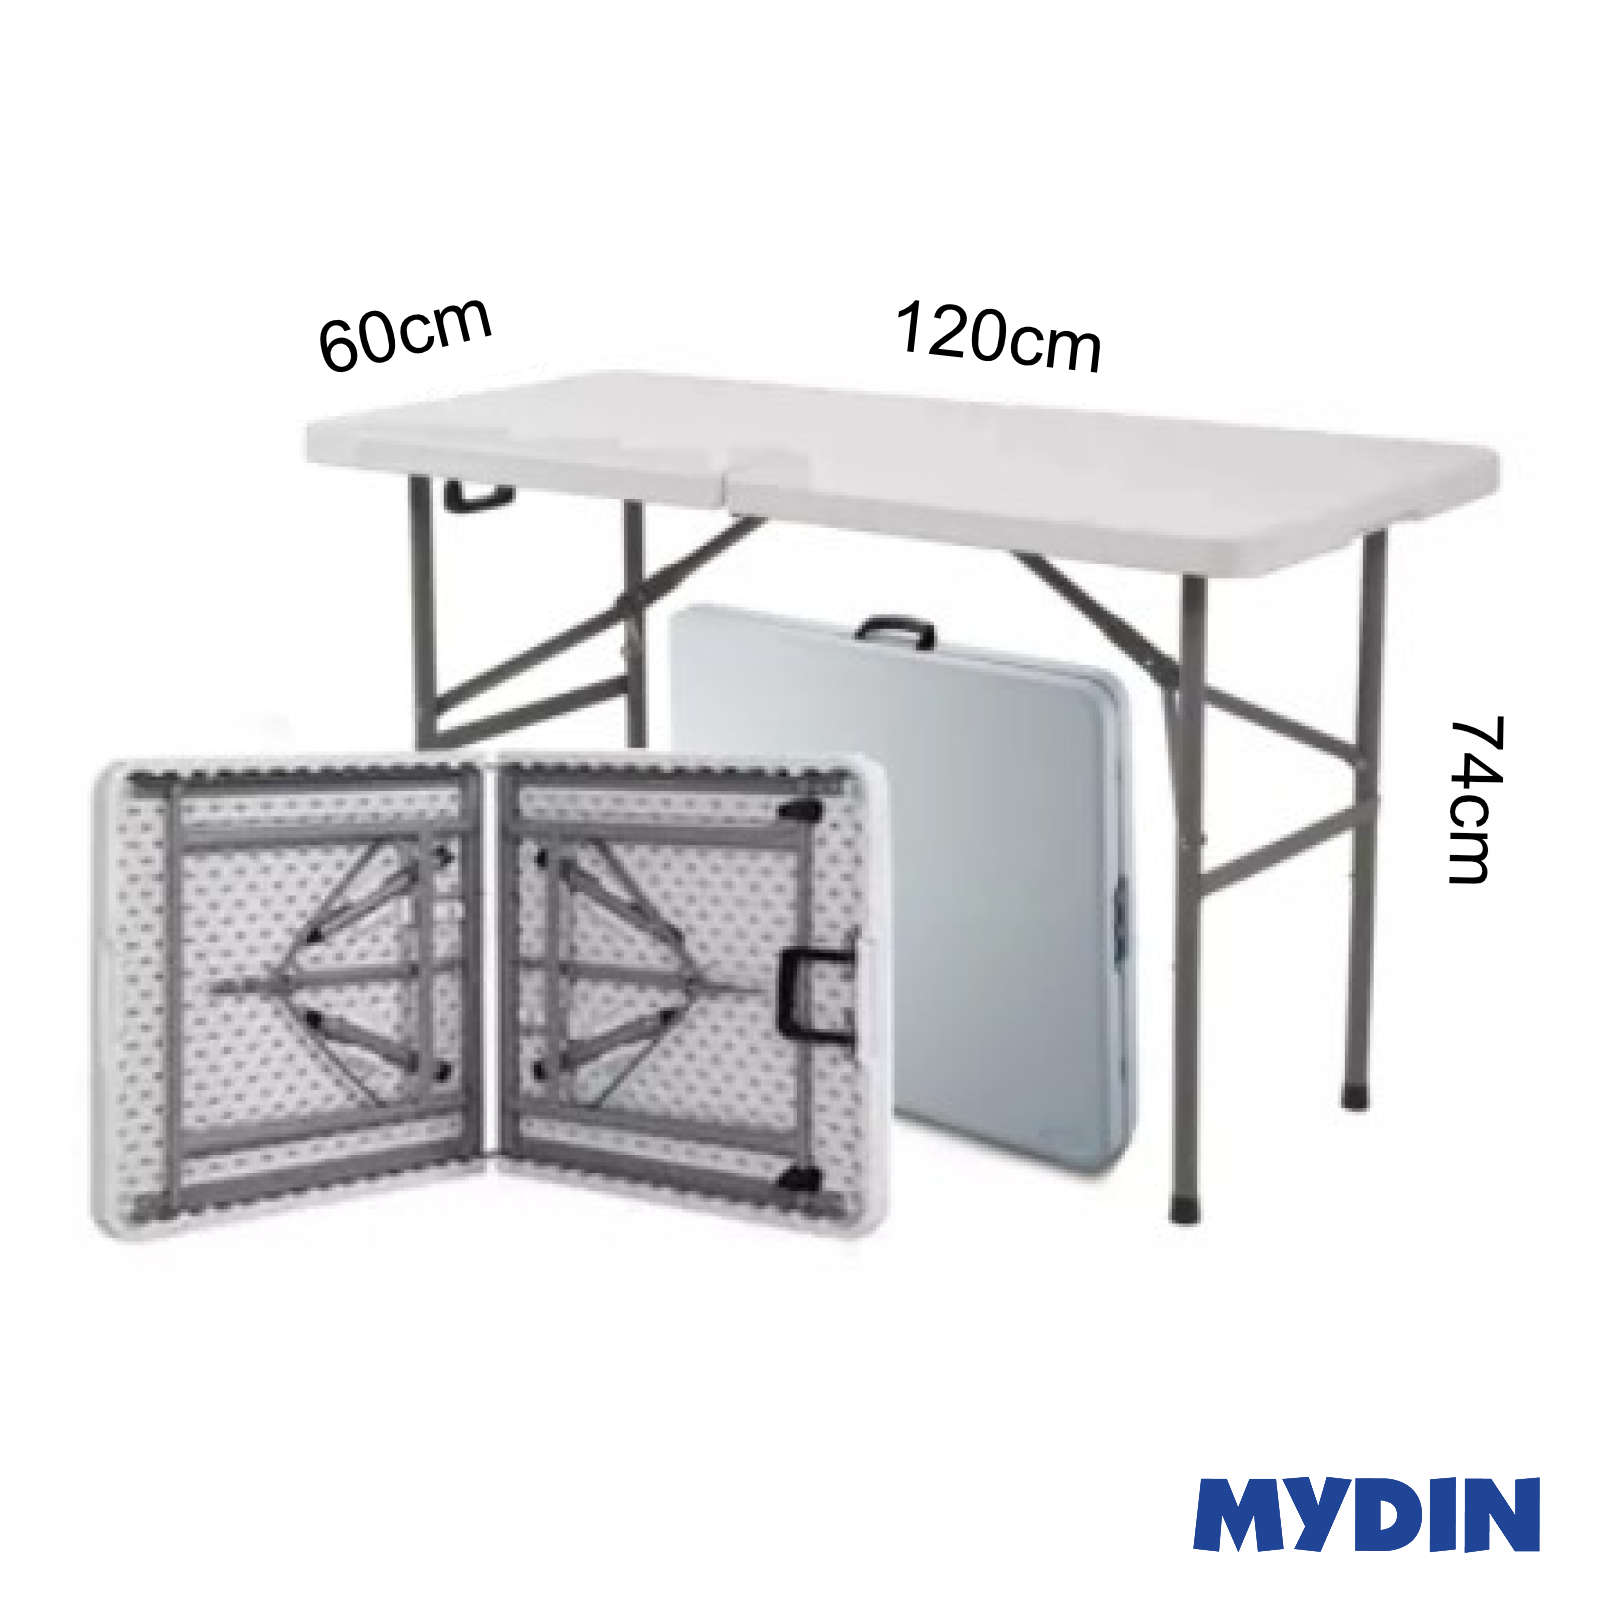 My Home Fold In Table HDPE KTHD-4FT